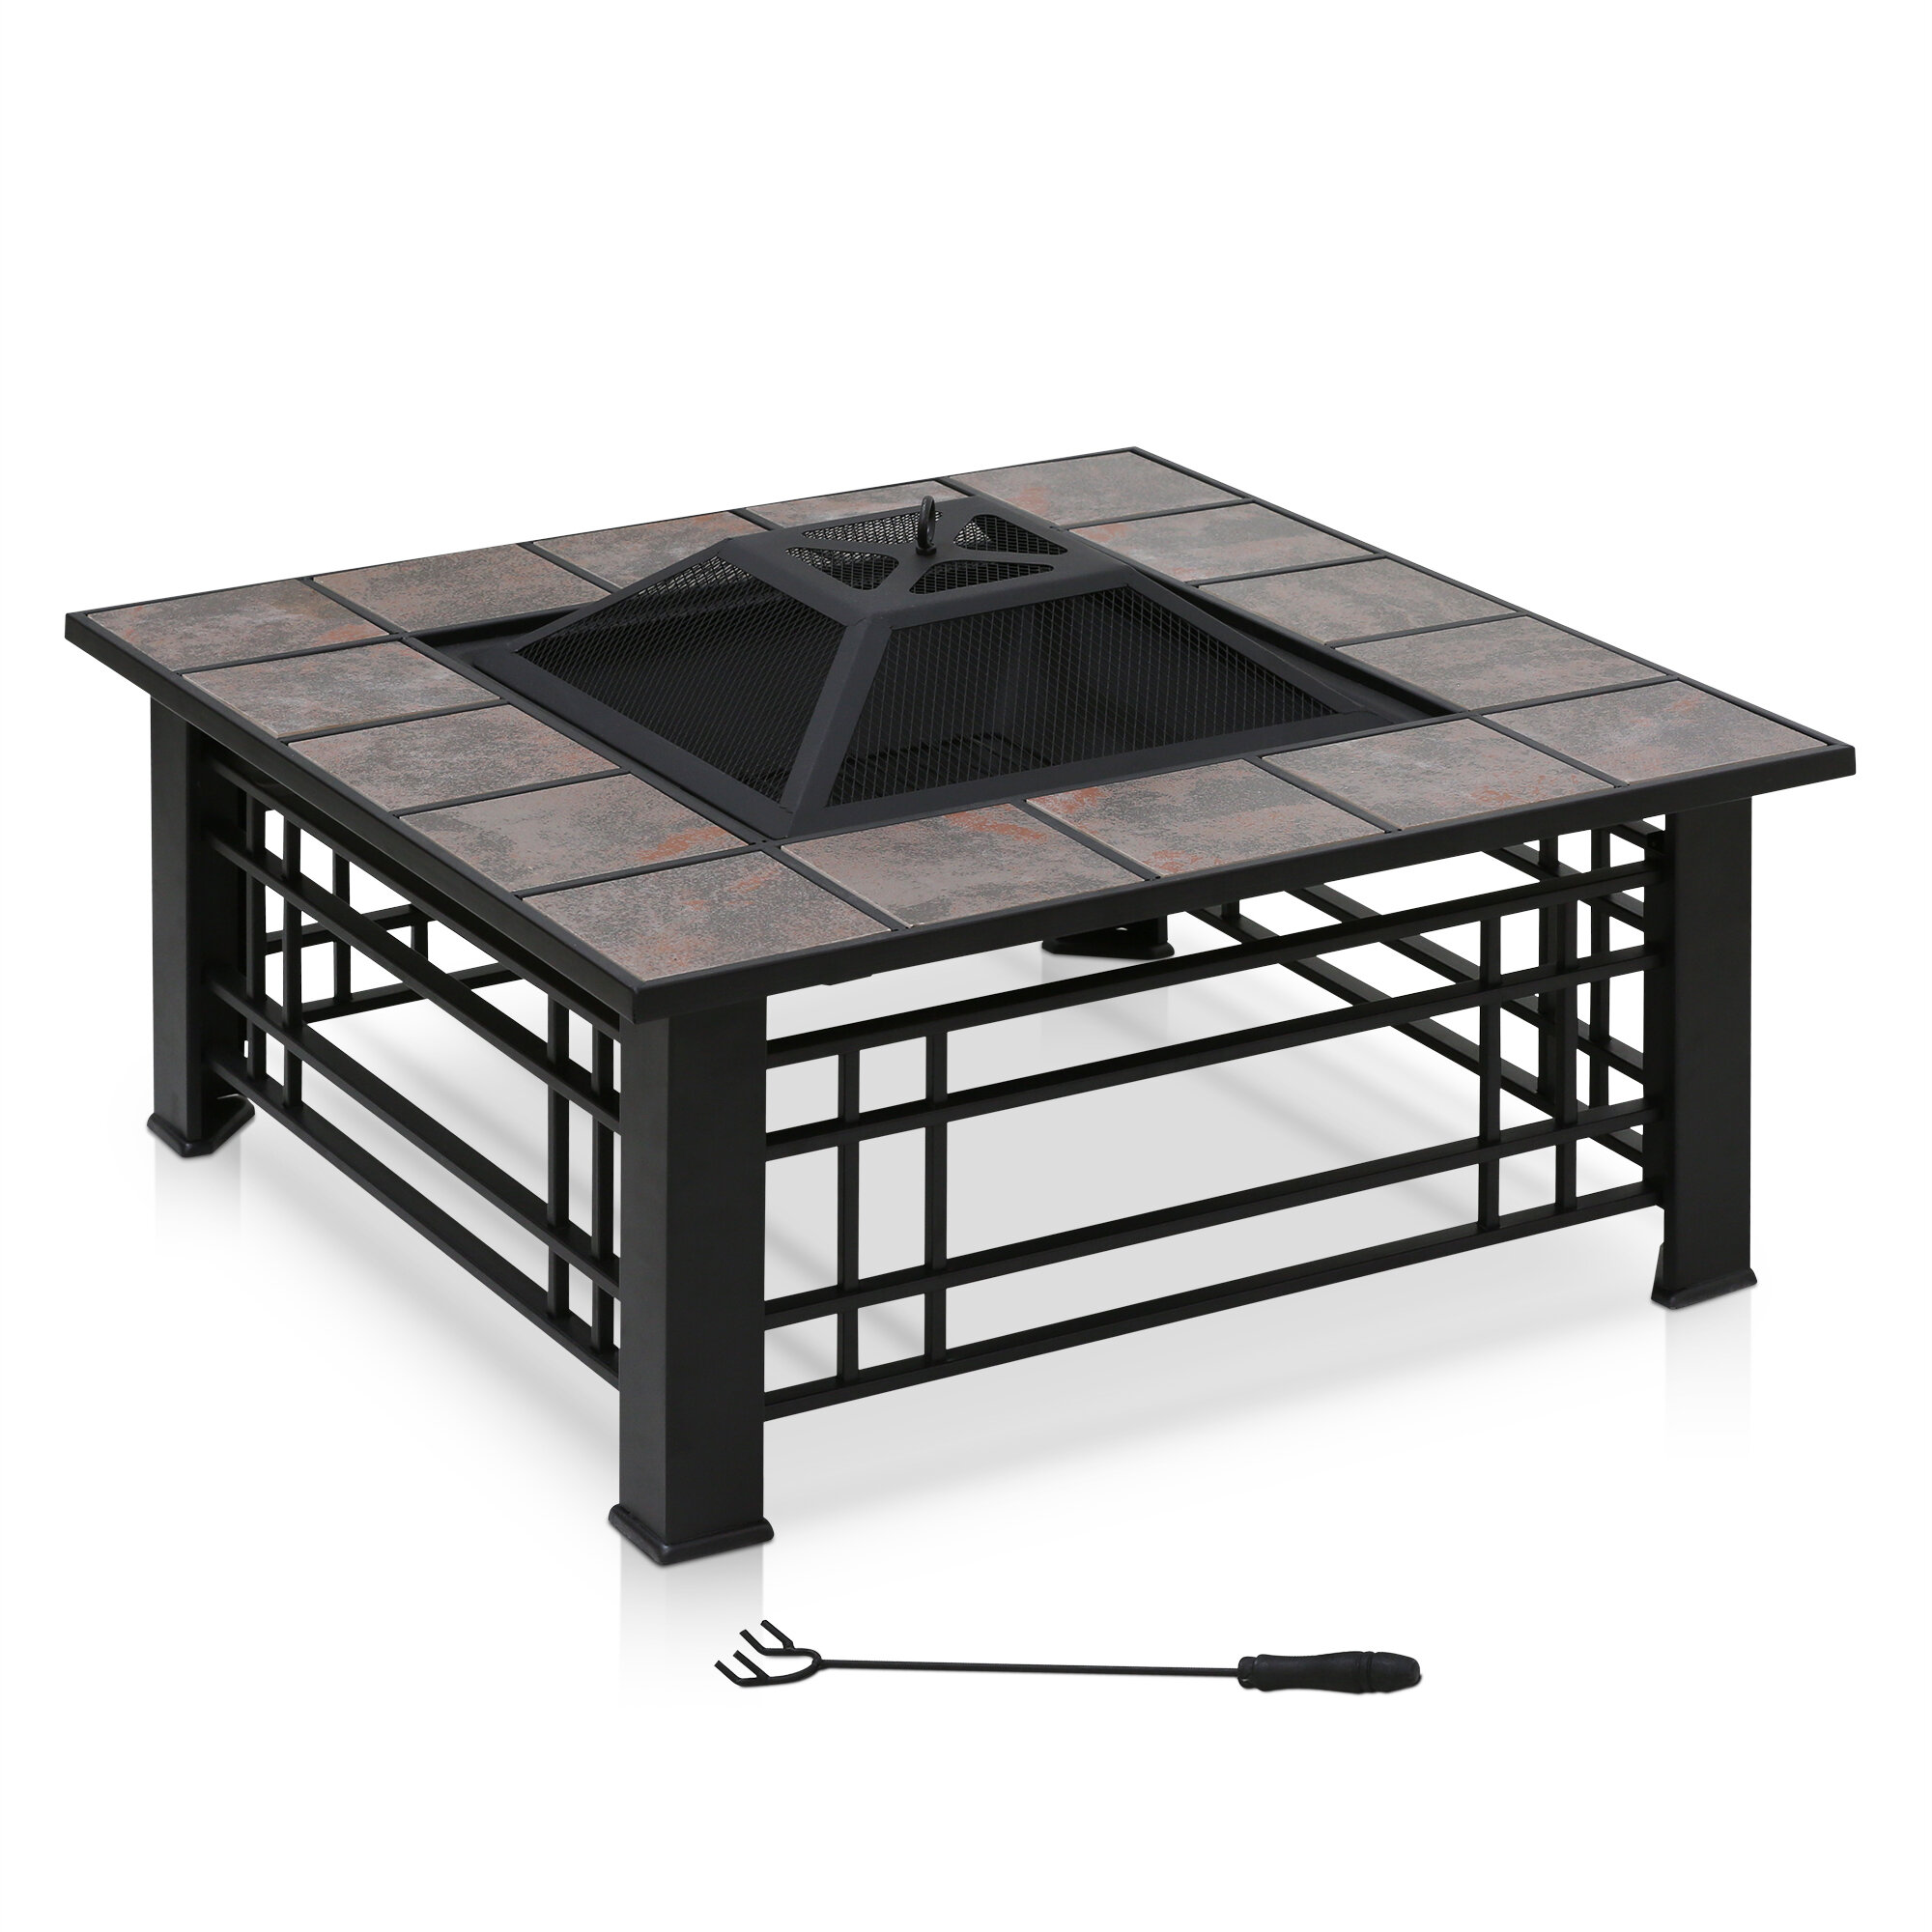 Furinno Steel Wood Burning Fire Pit Table Reviews Wayfair